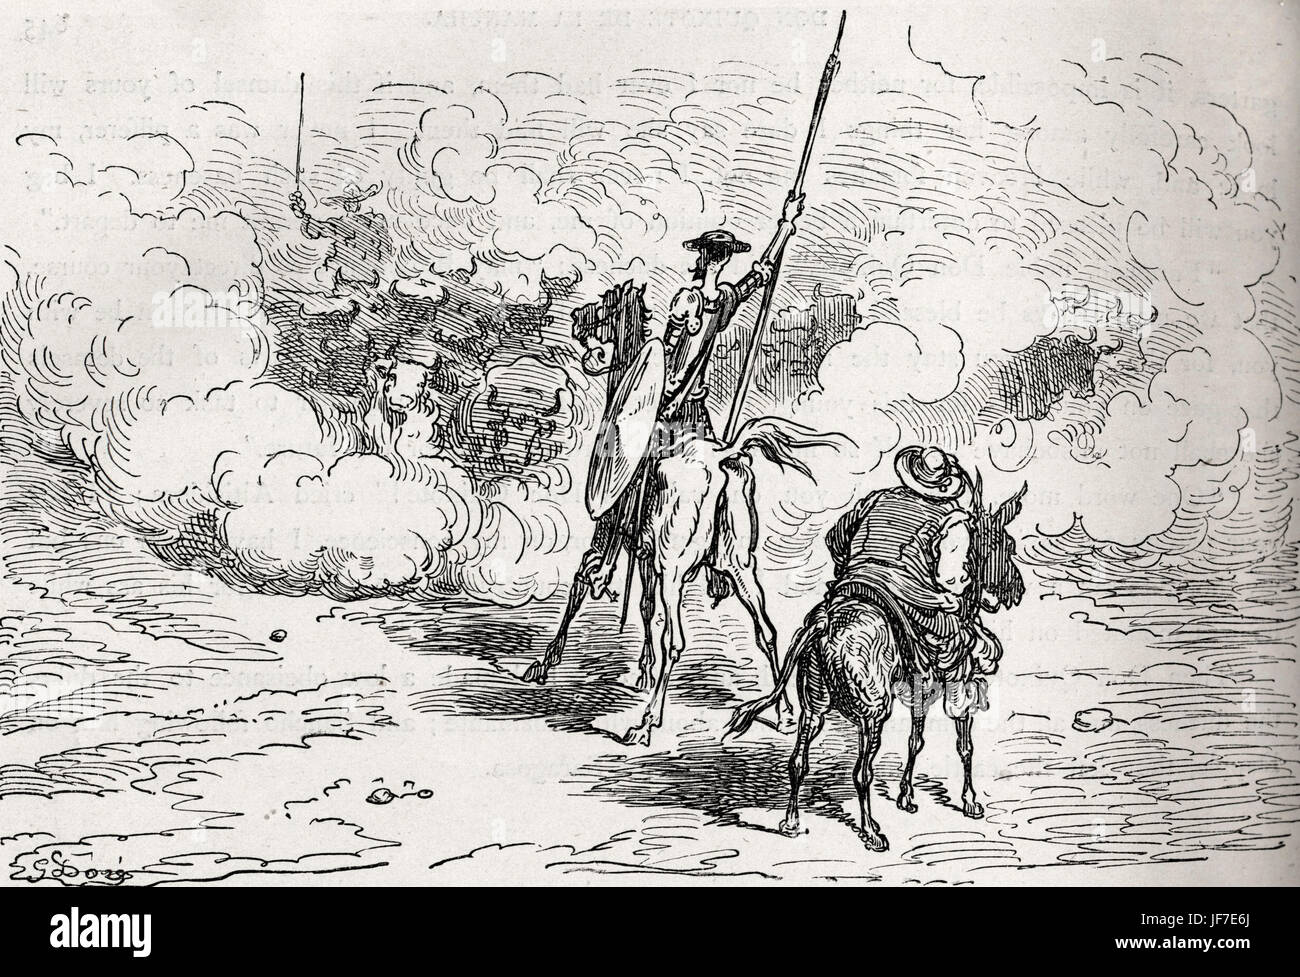 The History of Don Quixote written by Miguel de Cervantes and illustrated by Gustav Dore 1863.  Illustration of - Stock Image